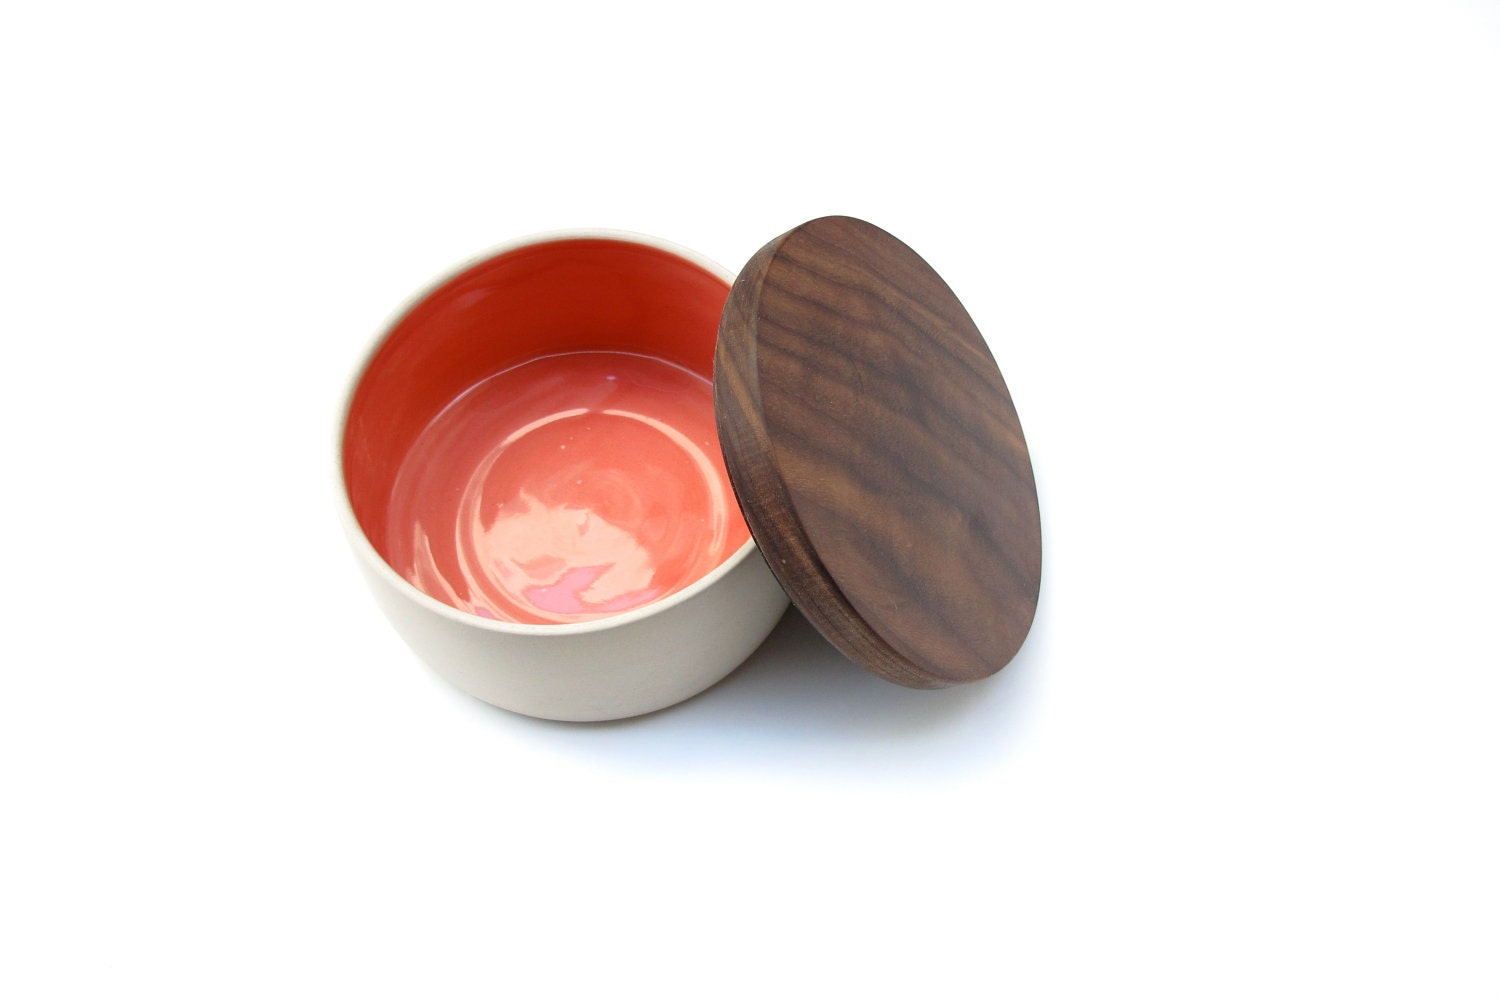 The Pink wood lidded Bowl